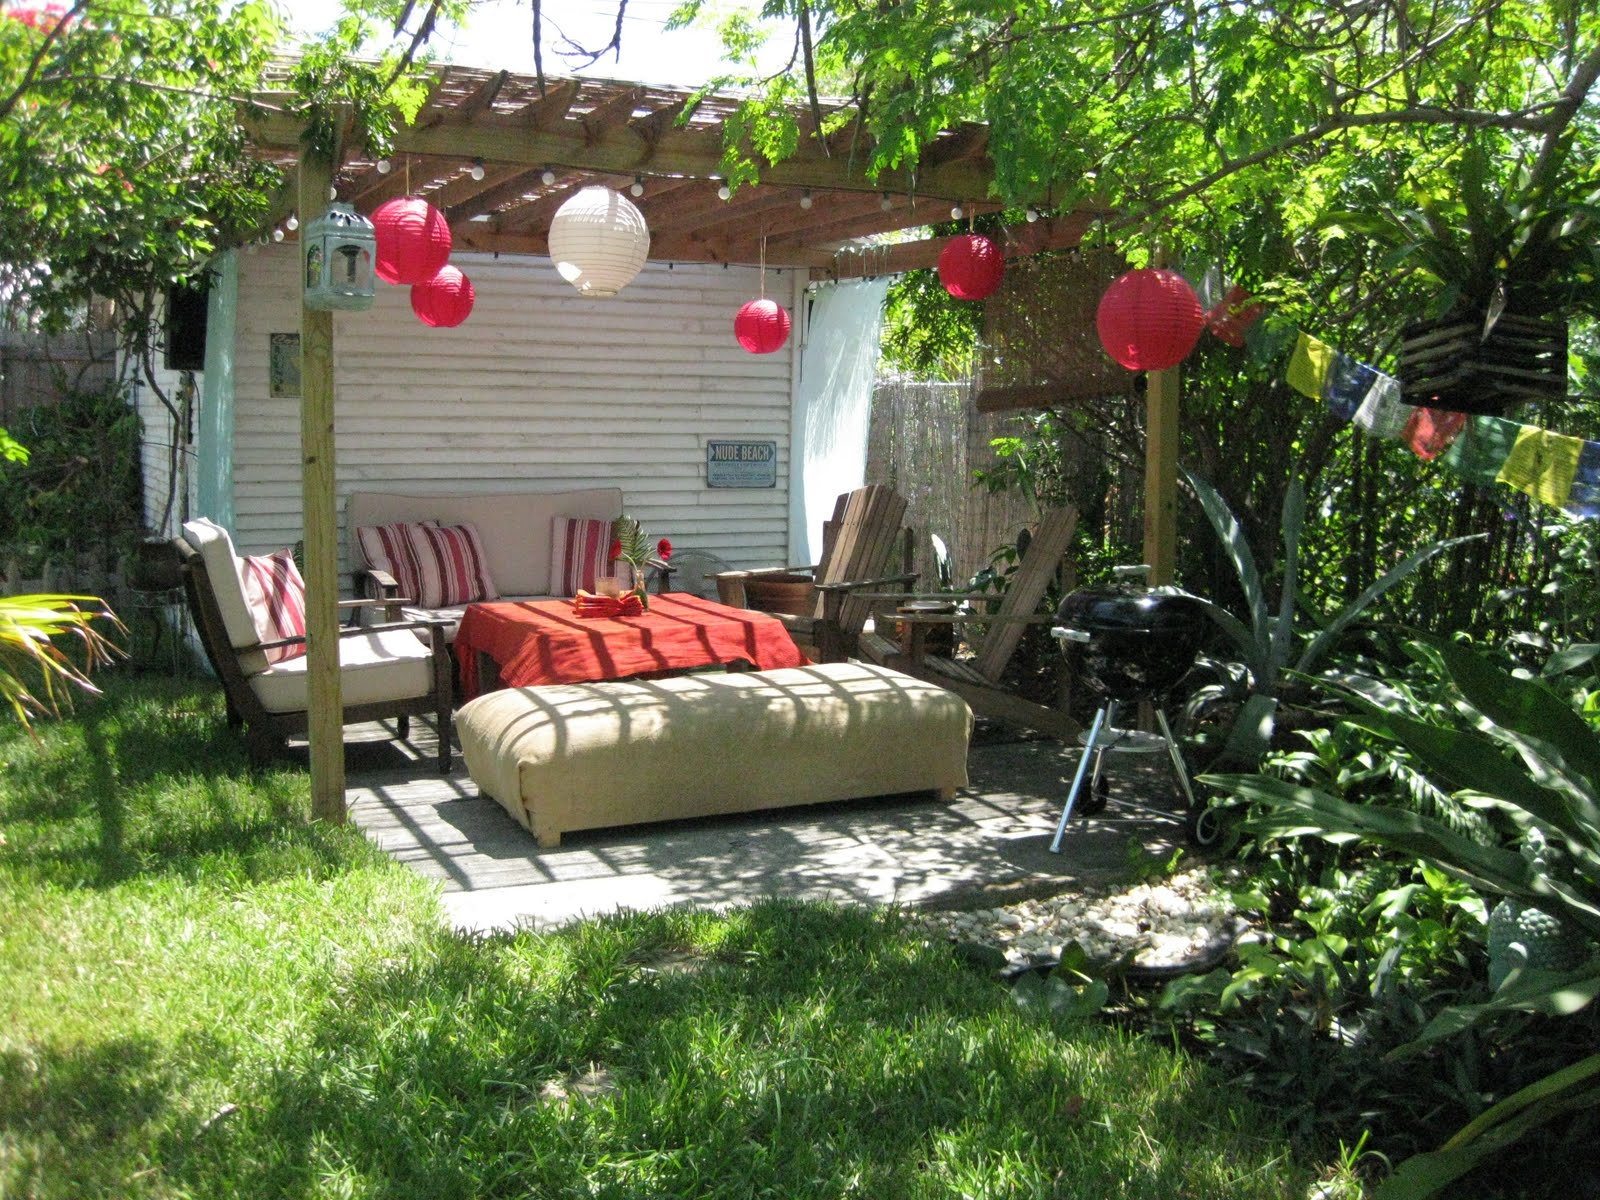 Dinner party a backyard barbeque for Backyard party decoration ideas for adults